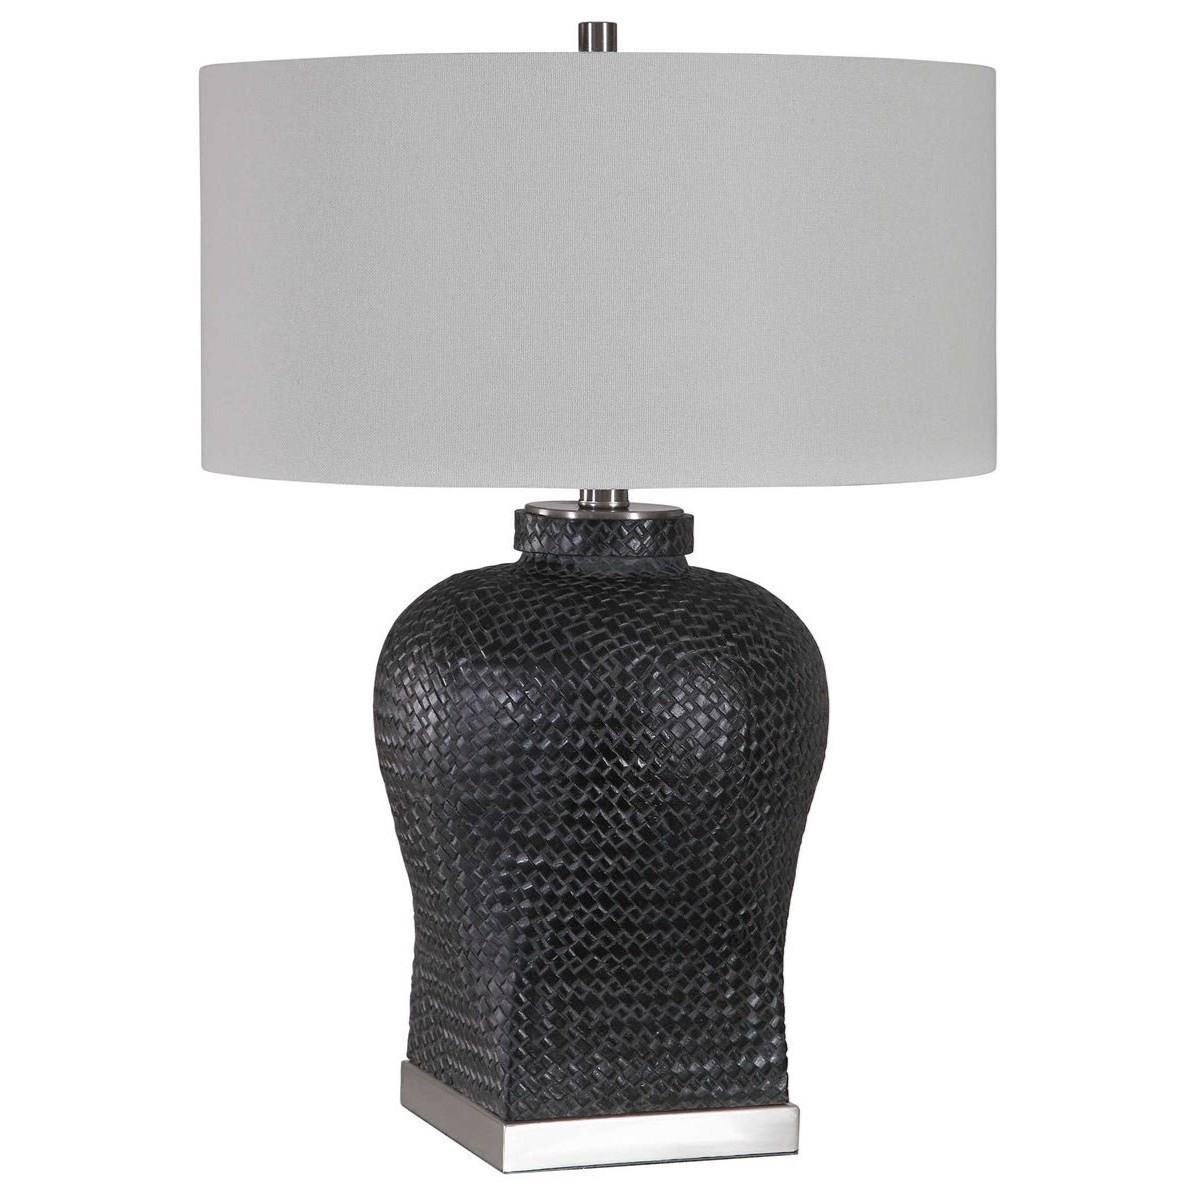 Table Lamps Akello Weave Texture Table Lamp by Uttermost at Goffena Furniture & Mattress Center